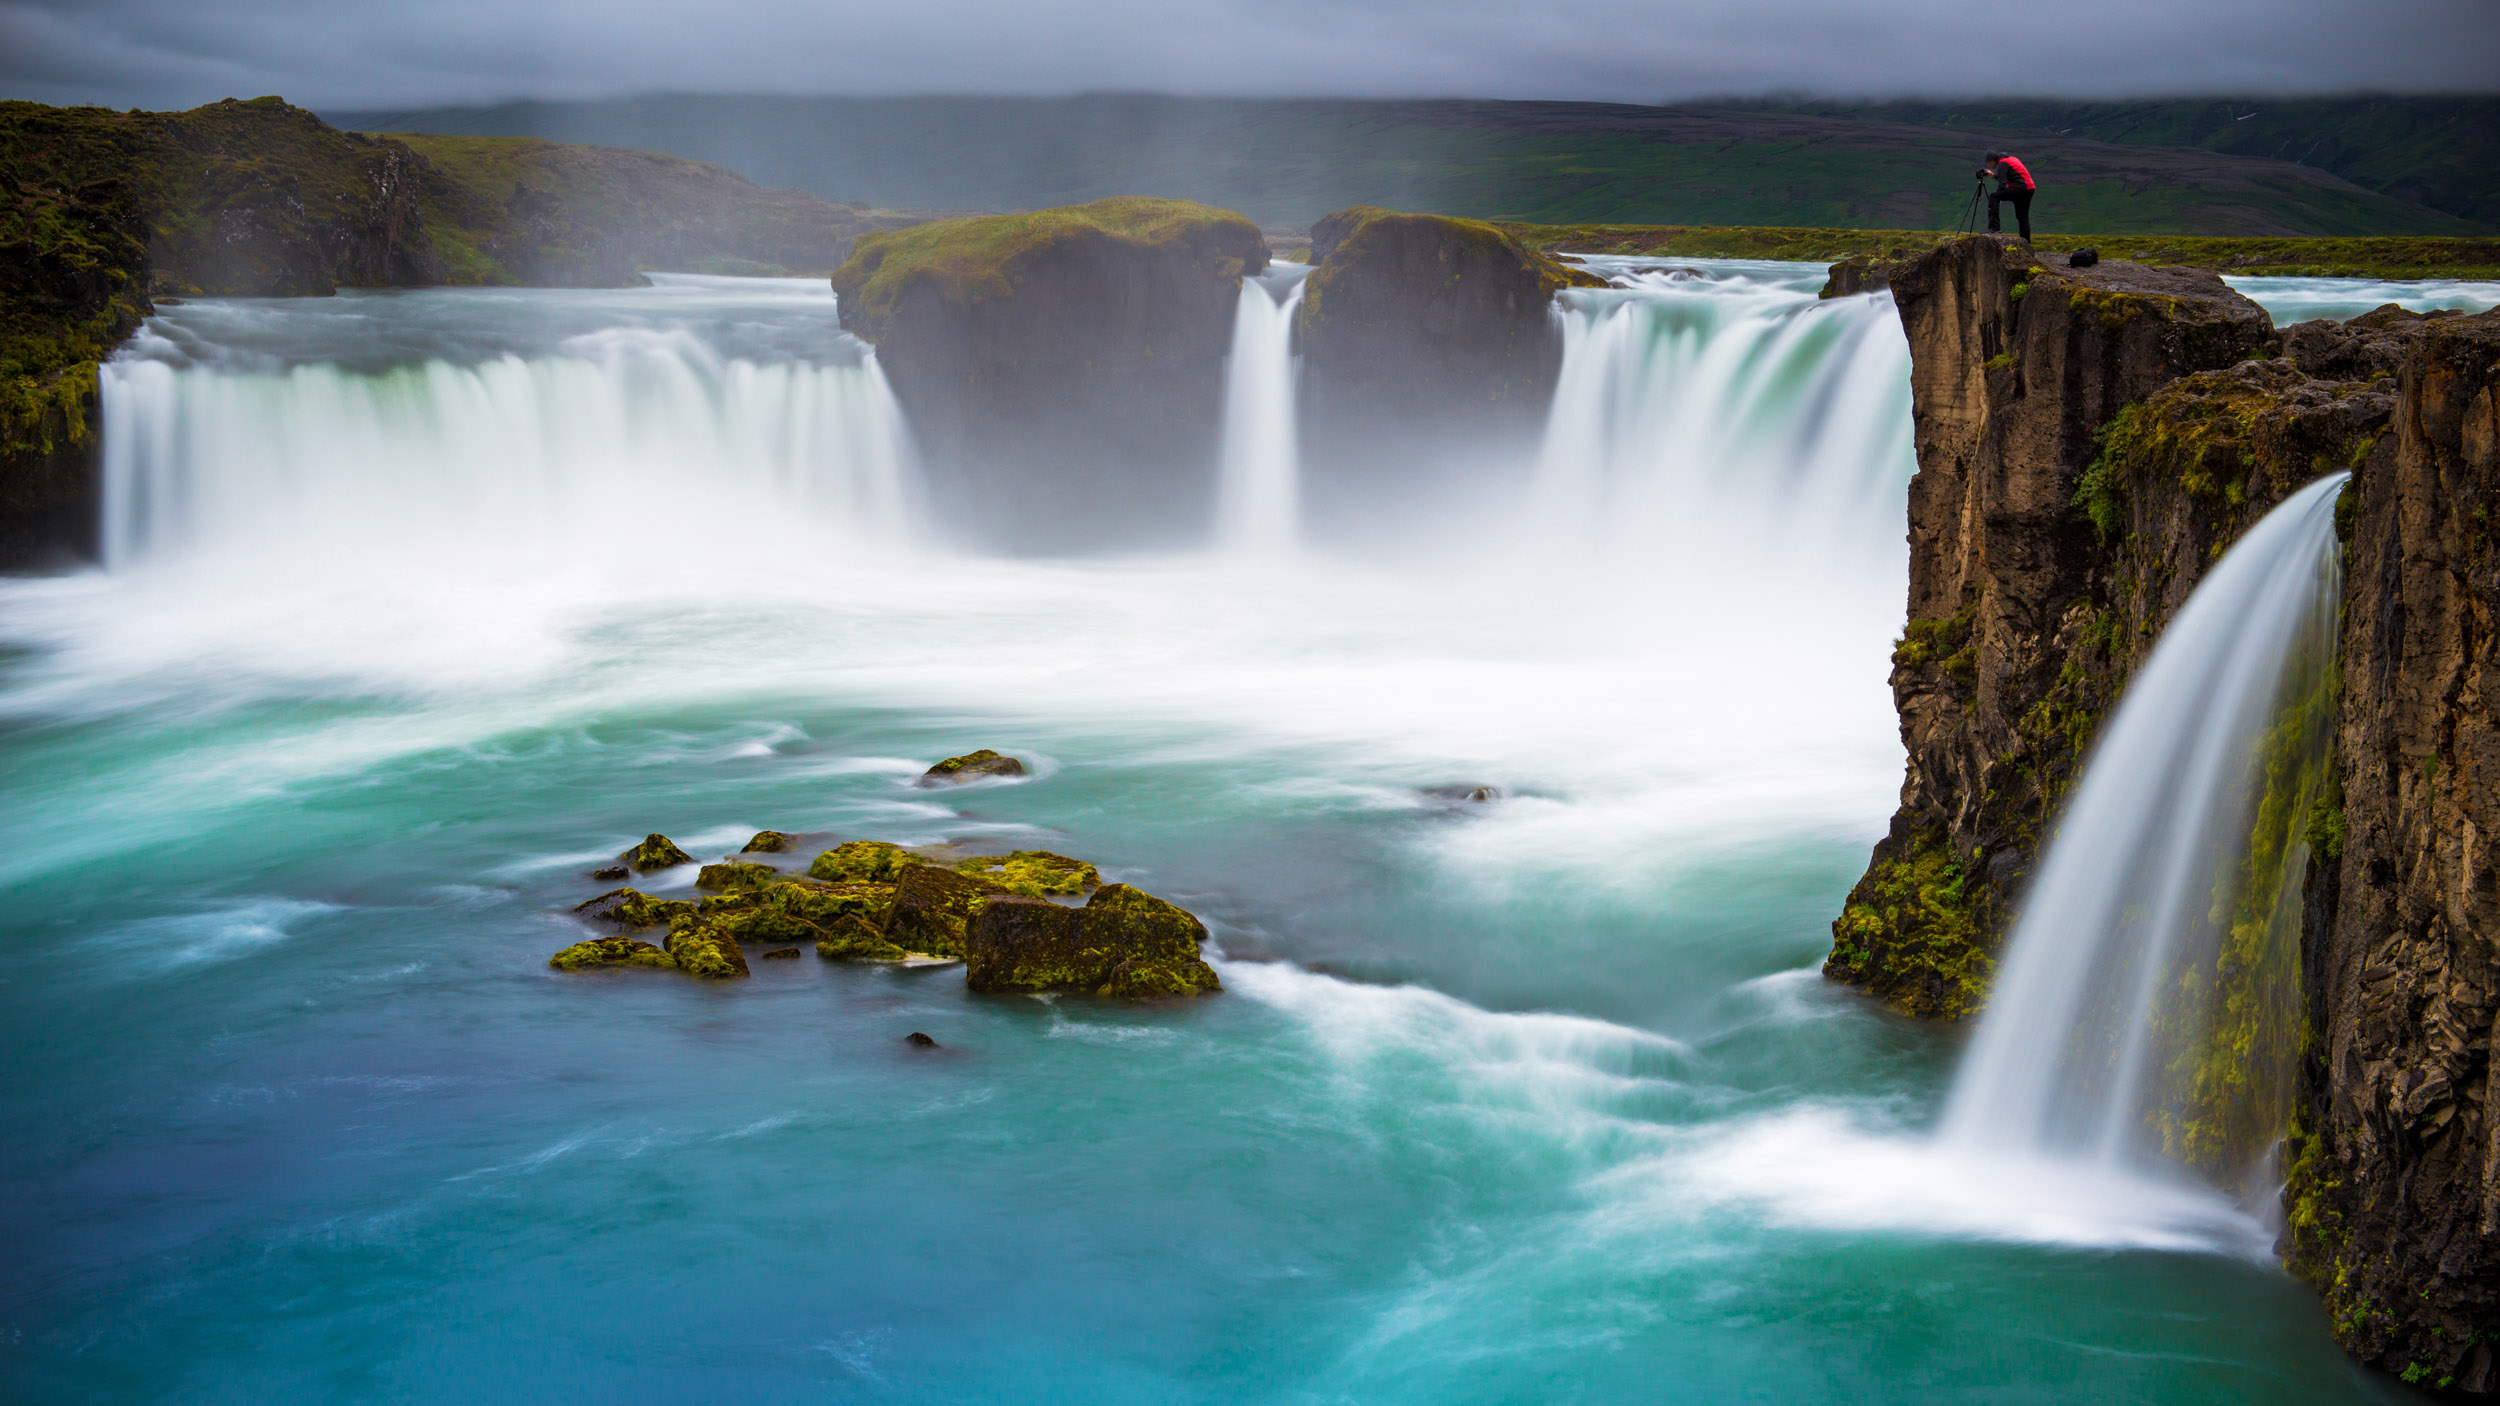 Goðafoss - The 'waterfall of the gods' in Northern Iceland. This was a gorgeous location even on a foggy day, and I managed to capture my friend photographing the location. Adding a person into the shot gives it a great sense of scale!